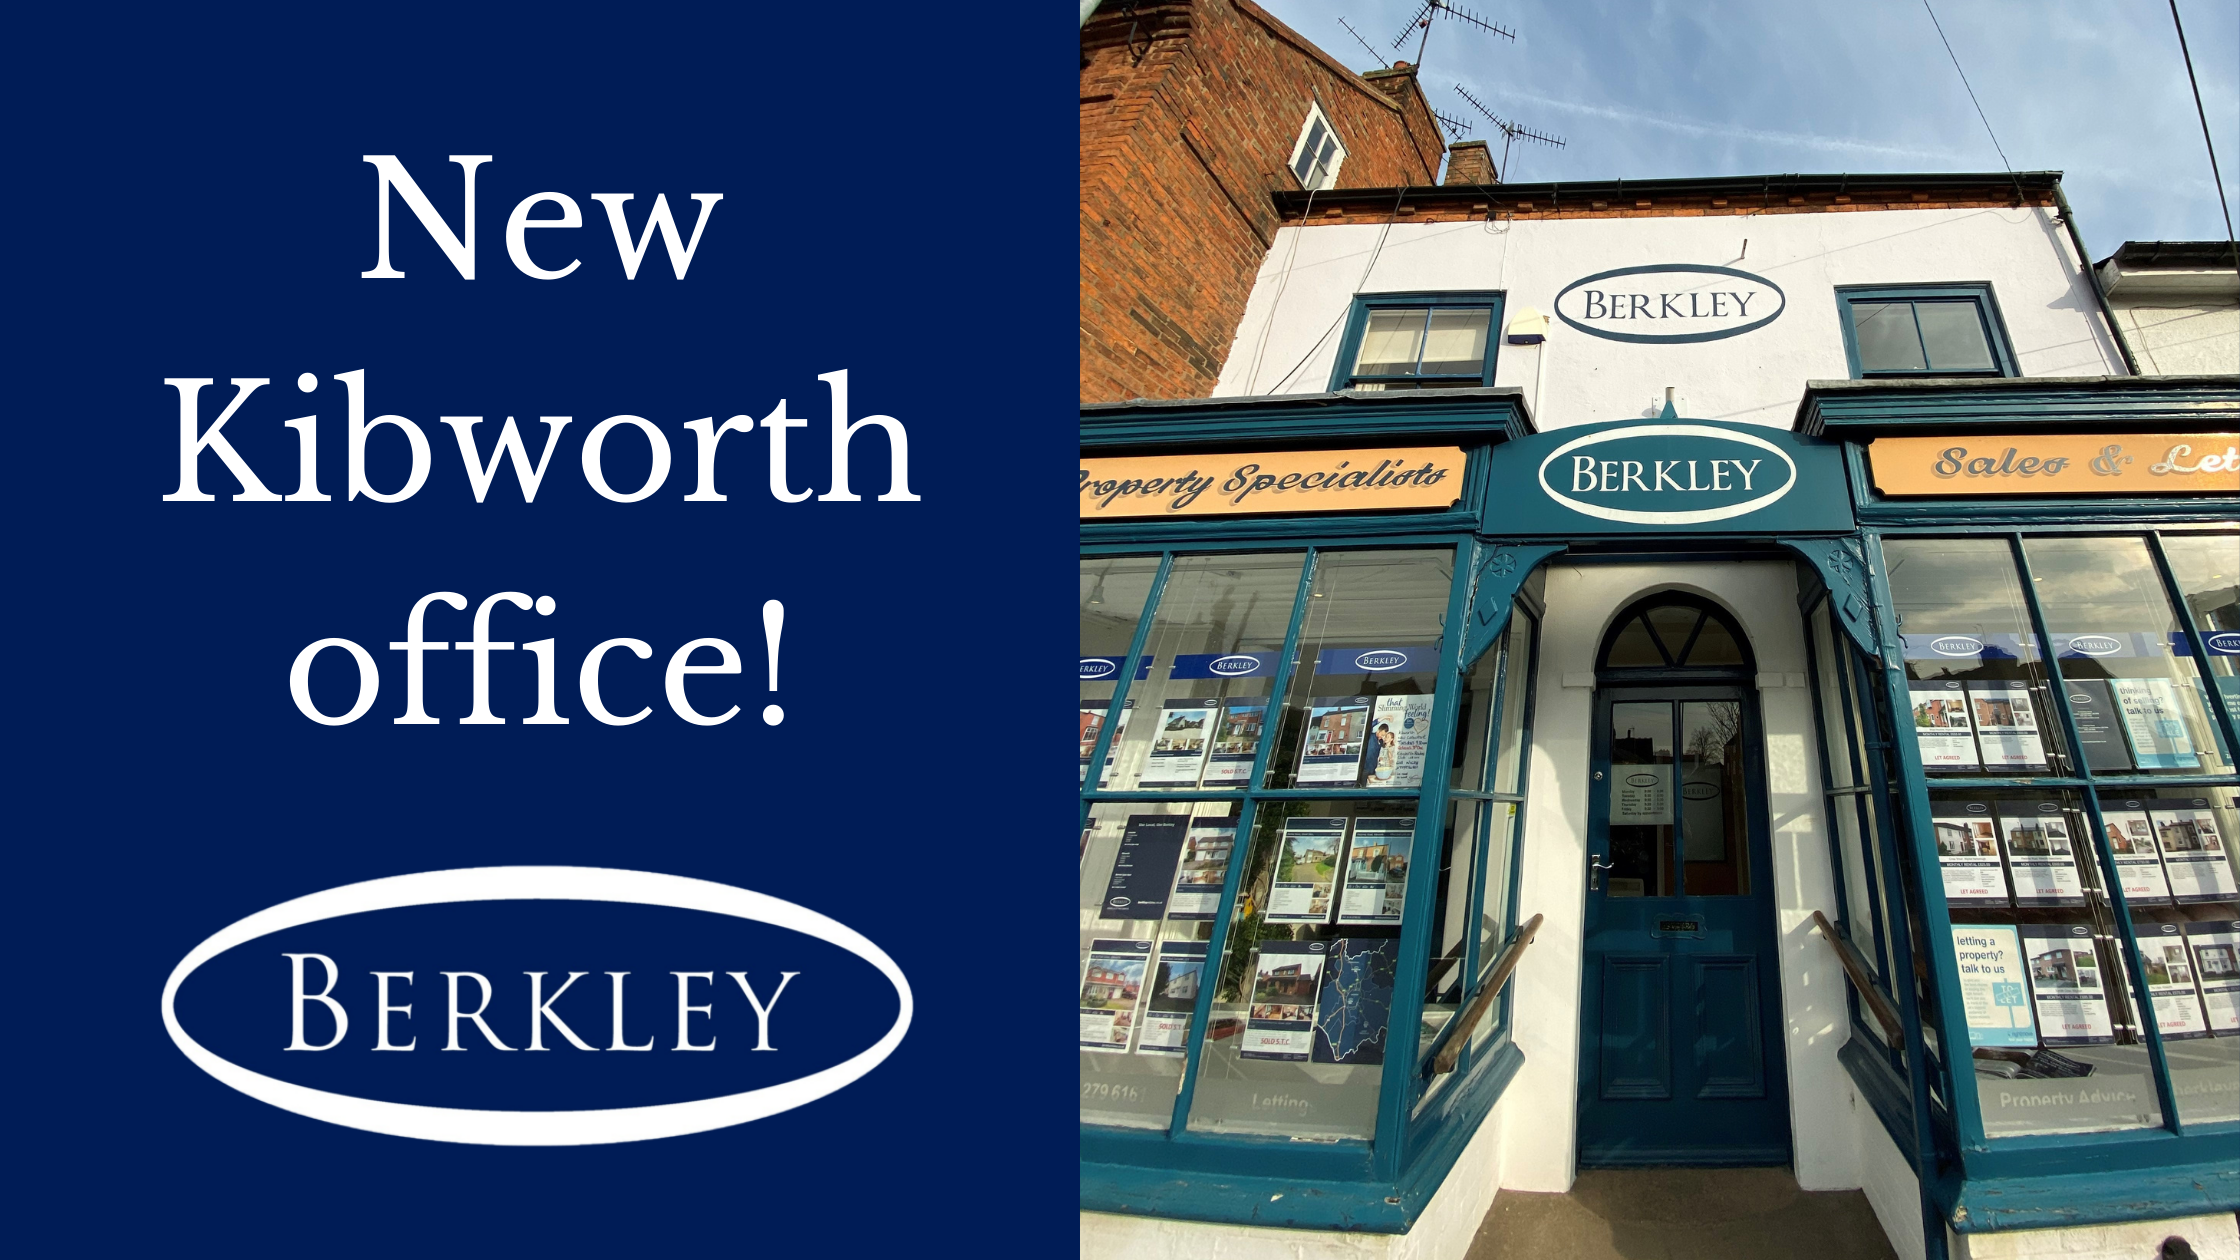 Our Berkley Kibworth Office is moving